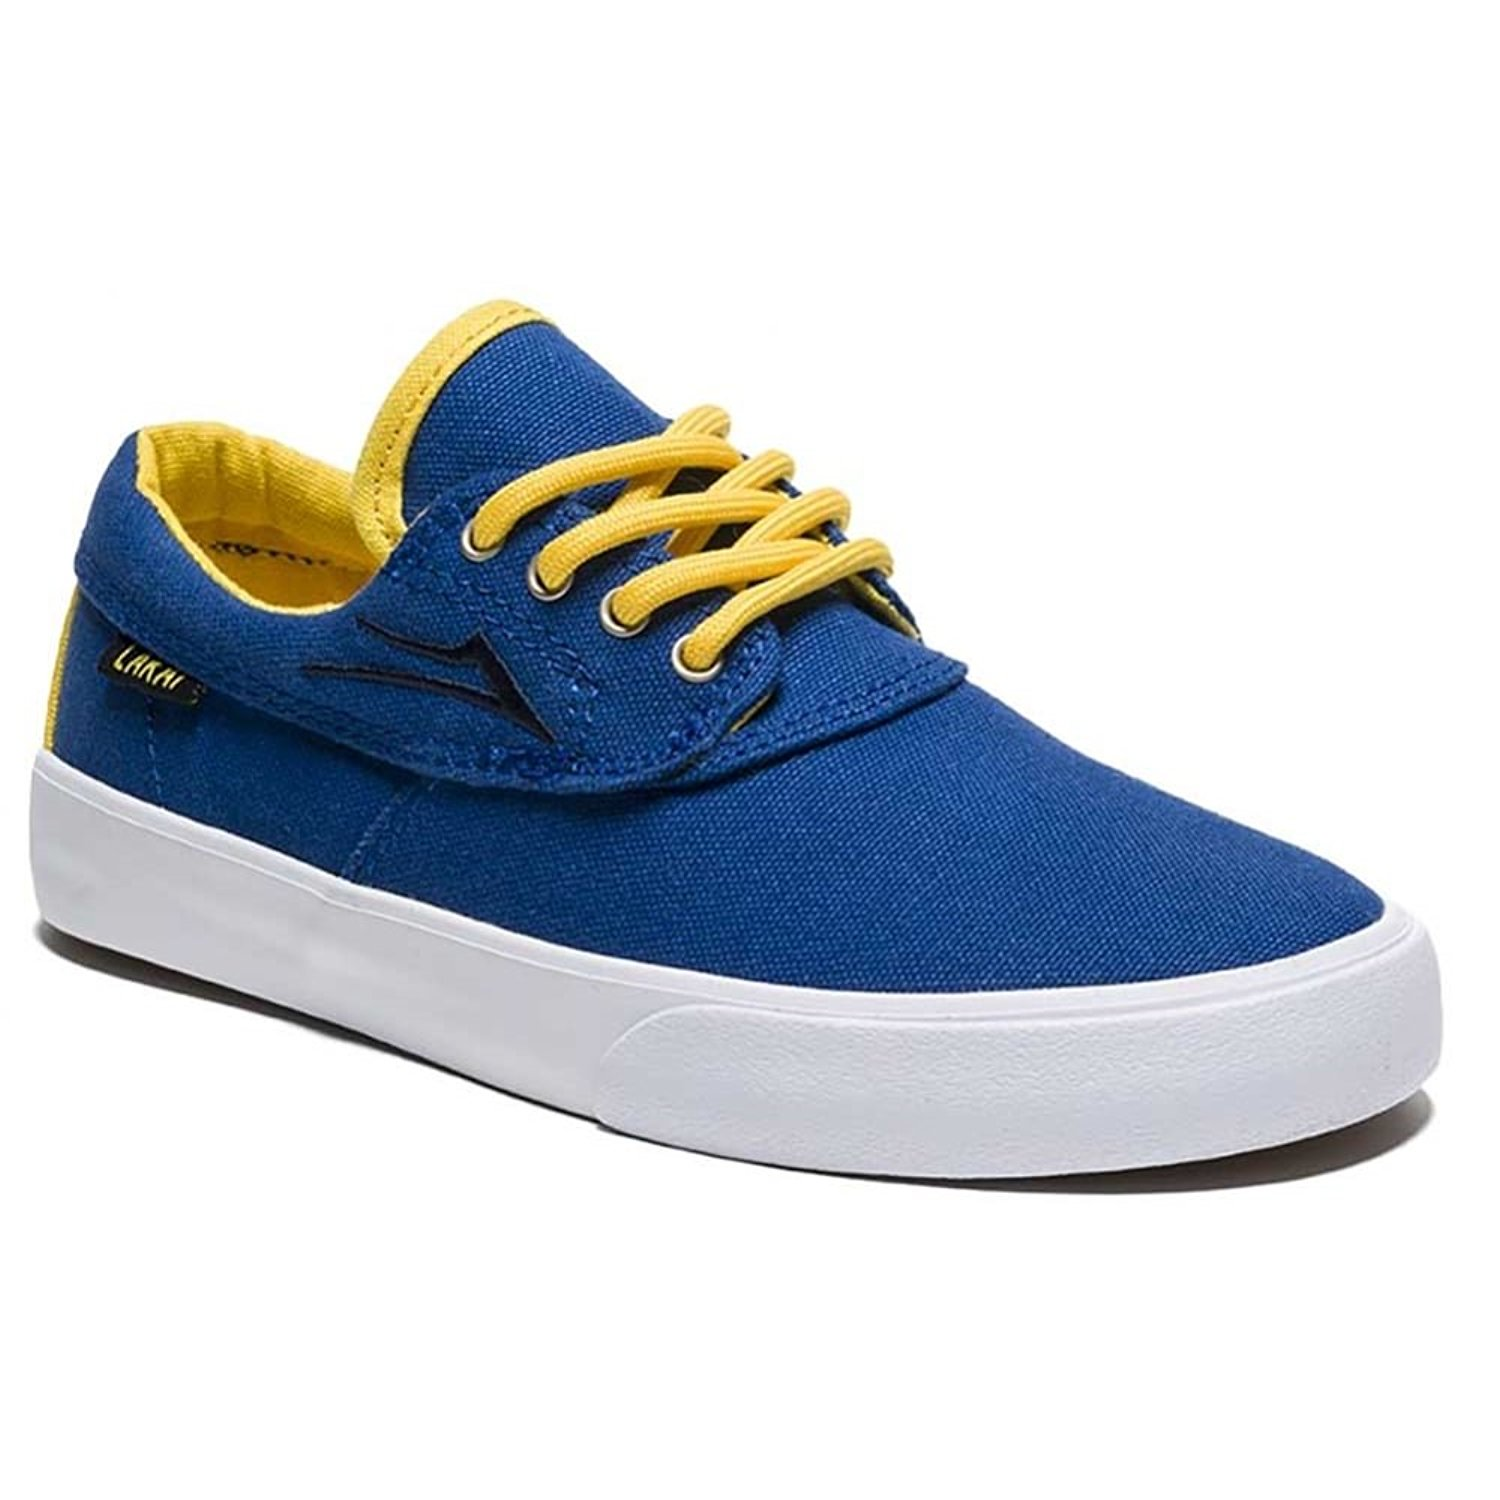 a82589b859ab Get Quotations · Lakai Camby Kids Skate Shoes in Royal Canvas